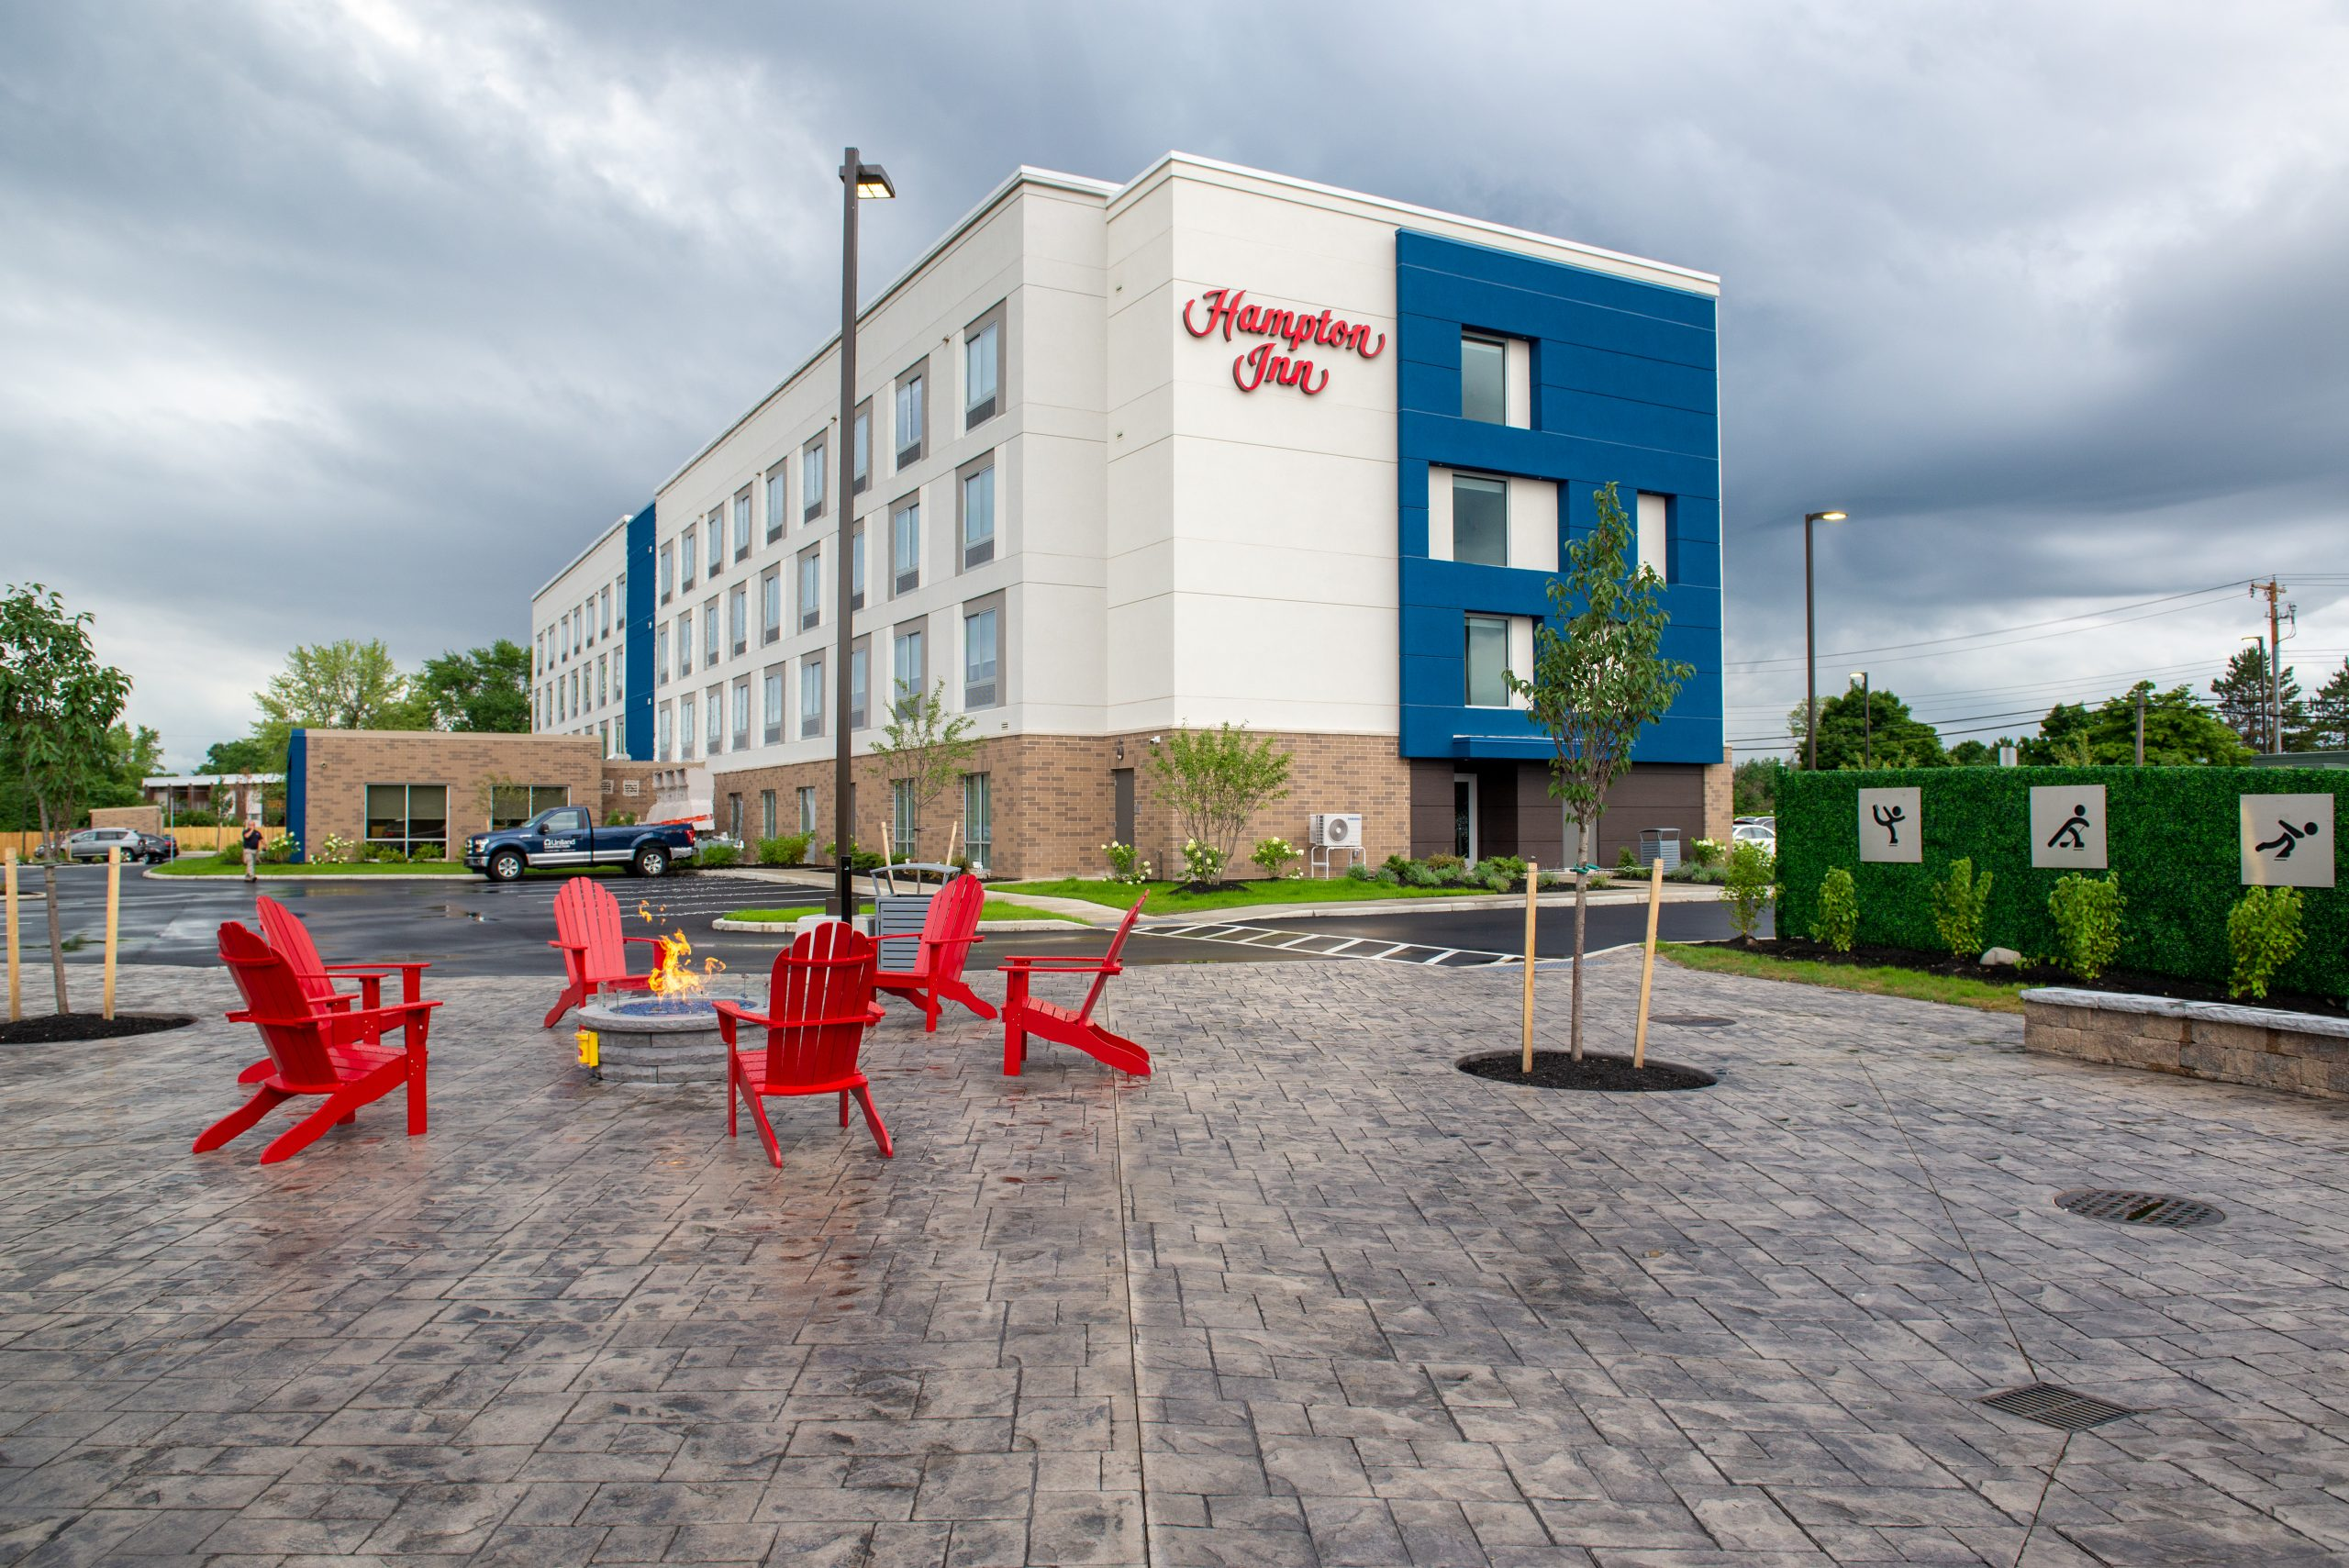 The Hampton Inn Buffalo-Amherst